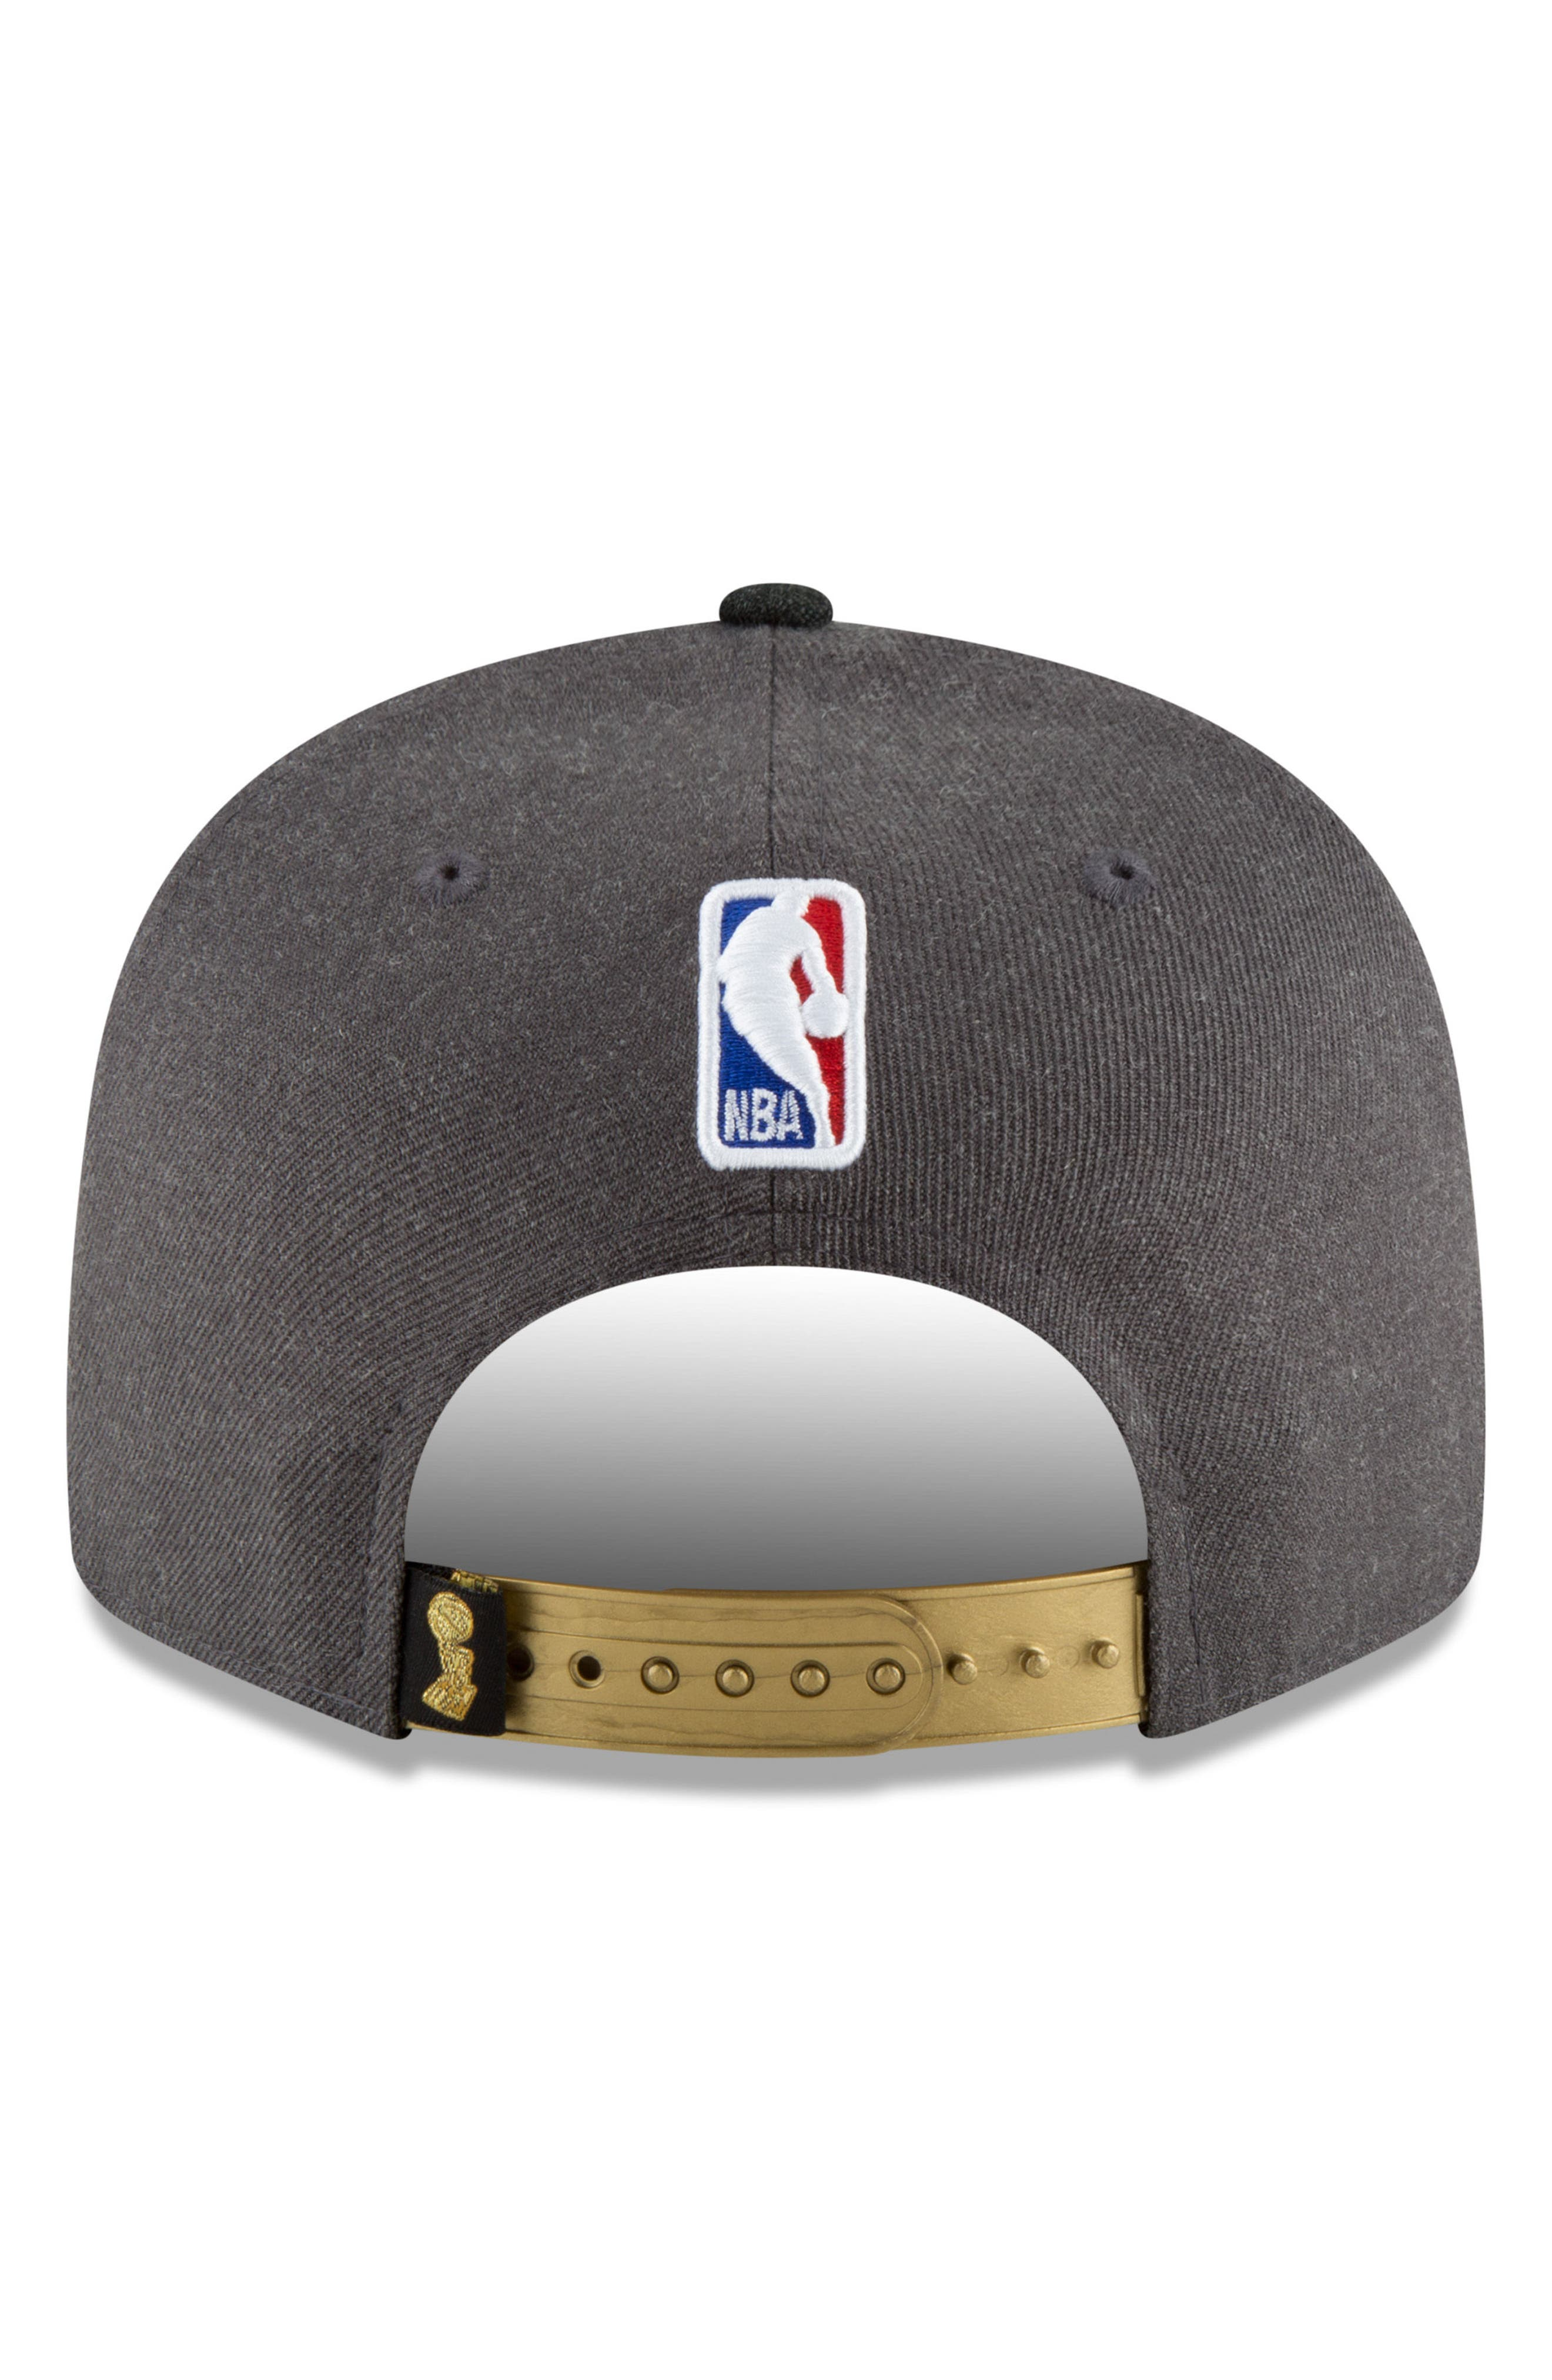 2018 NBA Champions - Golden State Warriors 9Fifty Snapback Cap,                             Alternate thumbnail 3, color,                             Golden State Warriors